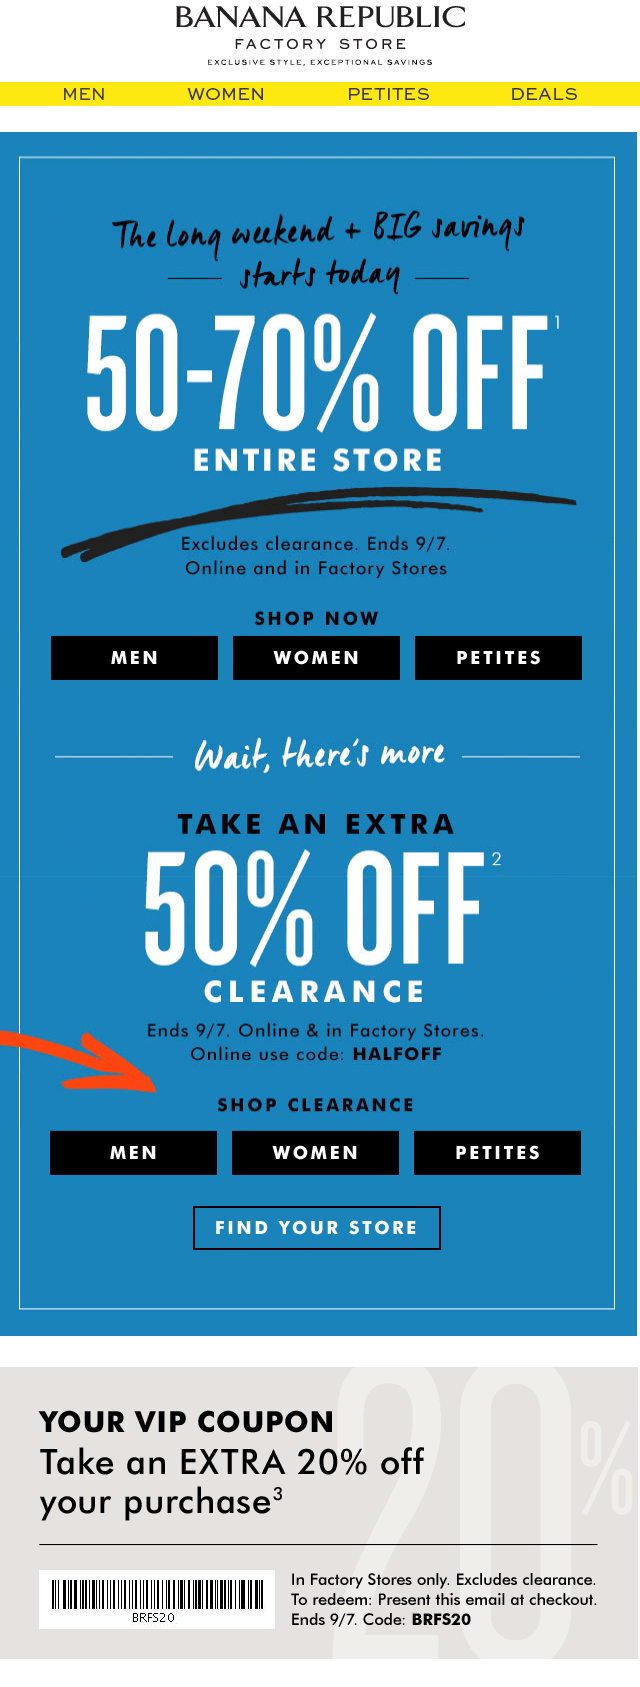 Banana Republic Factory Coupon March 2018 50-70% off everything & more at Banana Republic Factory, or online via promo code BRFS20